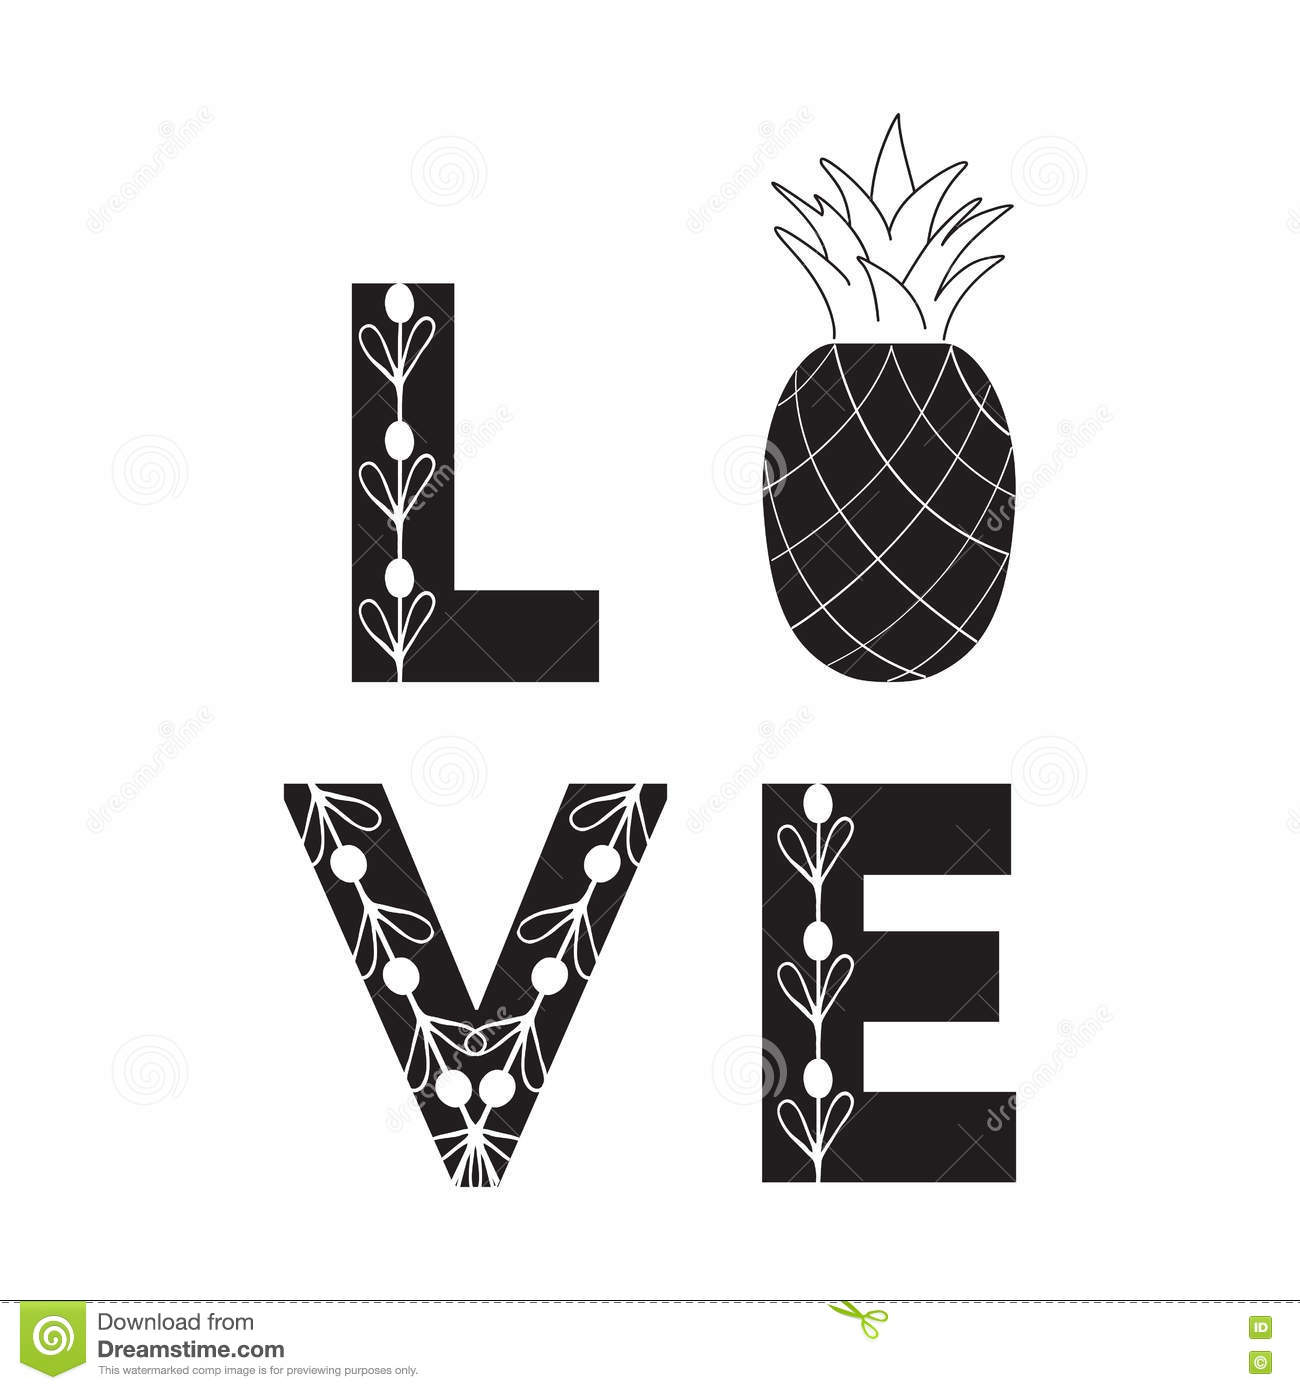 signe d 39 amour fruit abstrait guillemet ananas noir et blanc de symbole illustration de vecteur. Black Bedroom Furniture Sets. Home Design Ideas